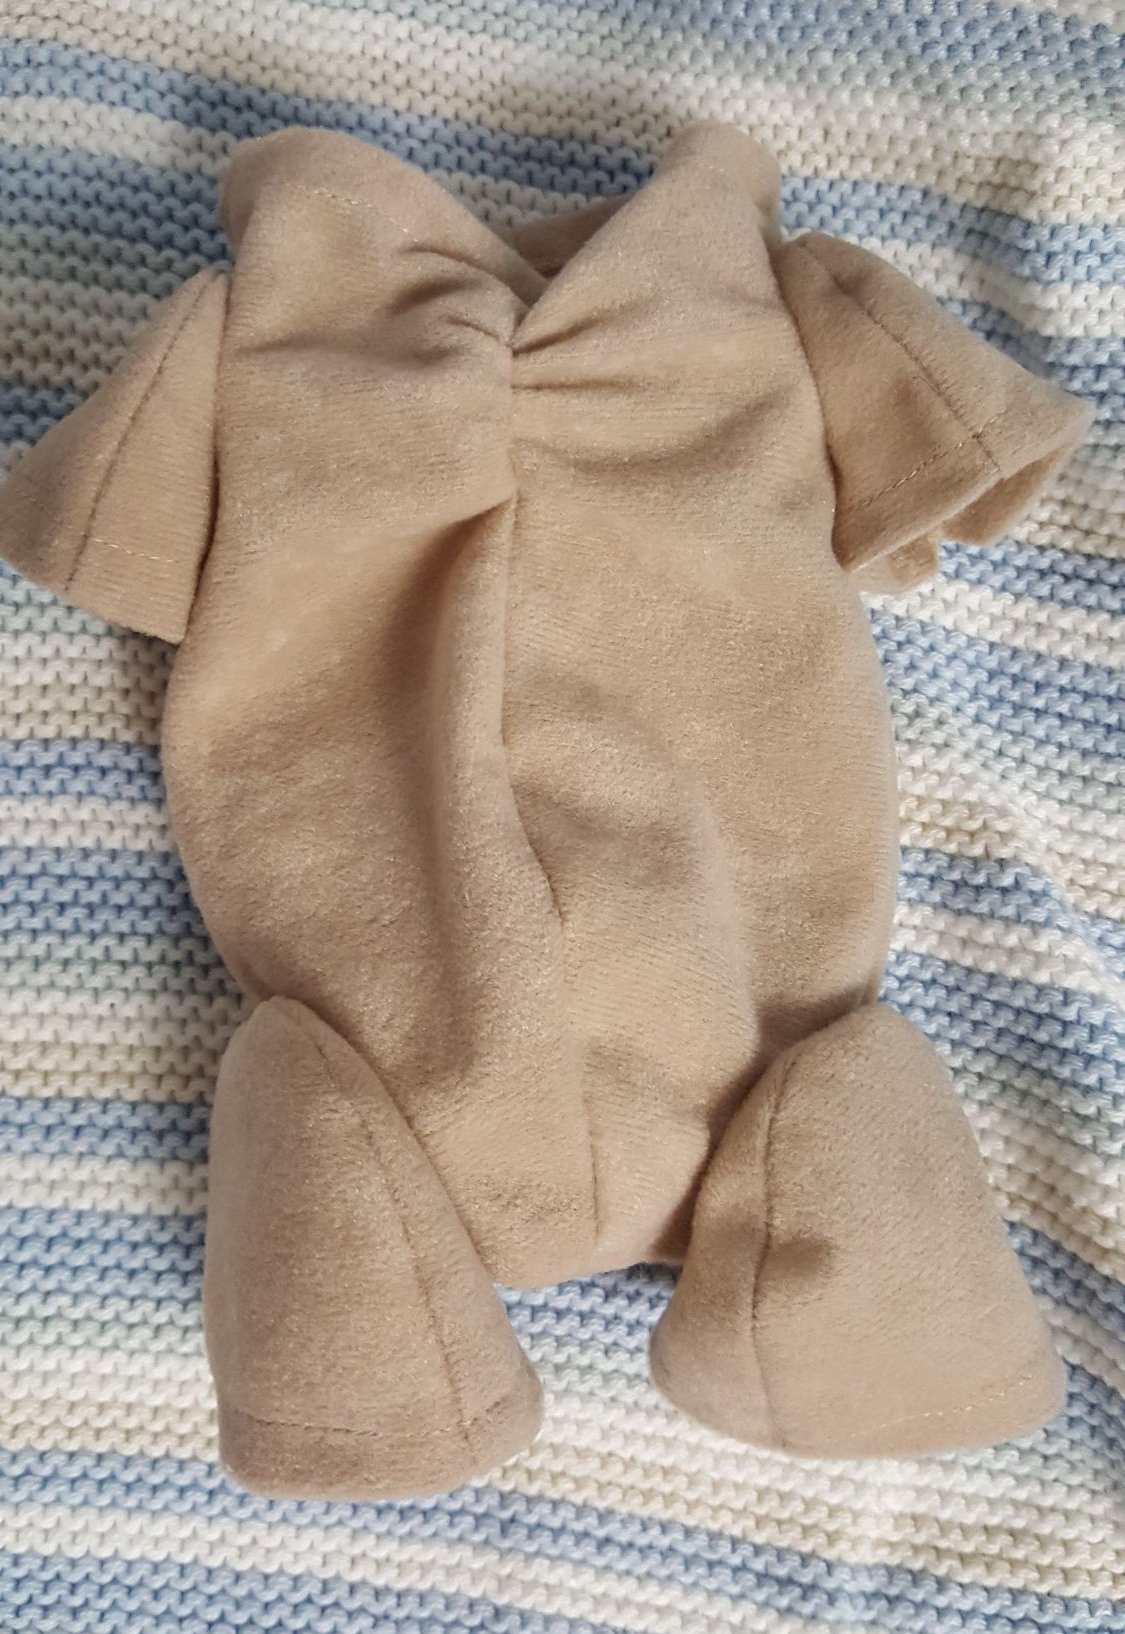 Faux doe suede fabric reborn bodies > 3/4 arms and 3/4 legs.